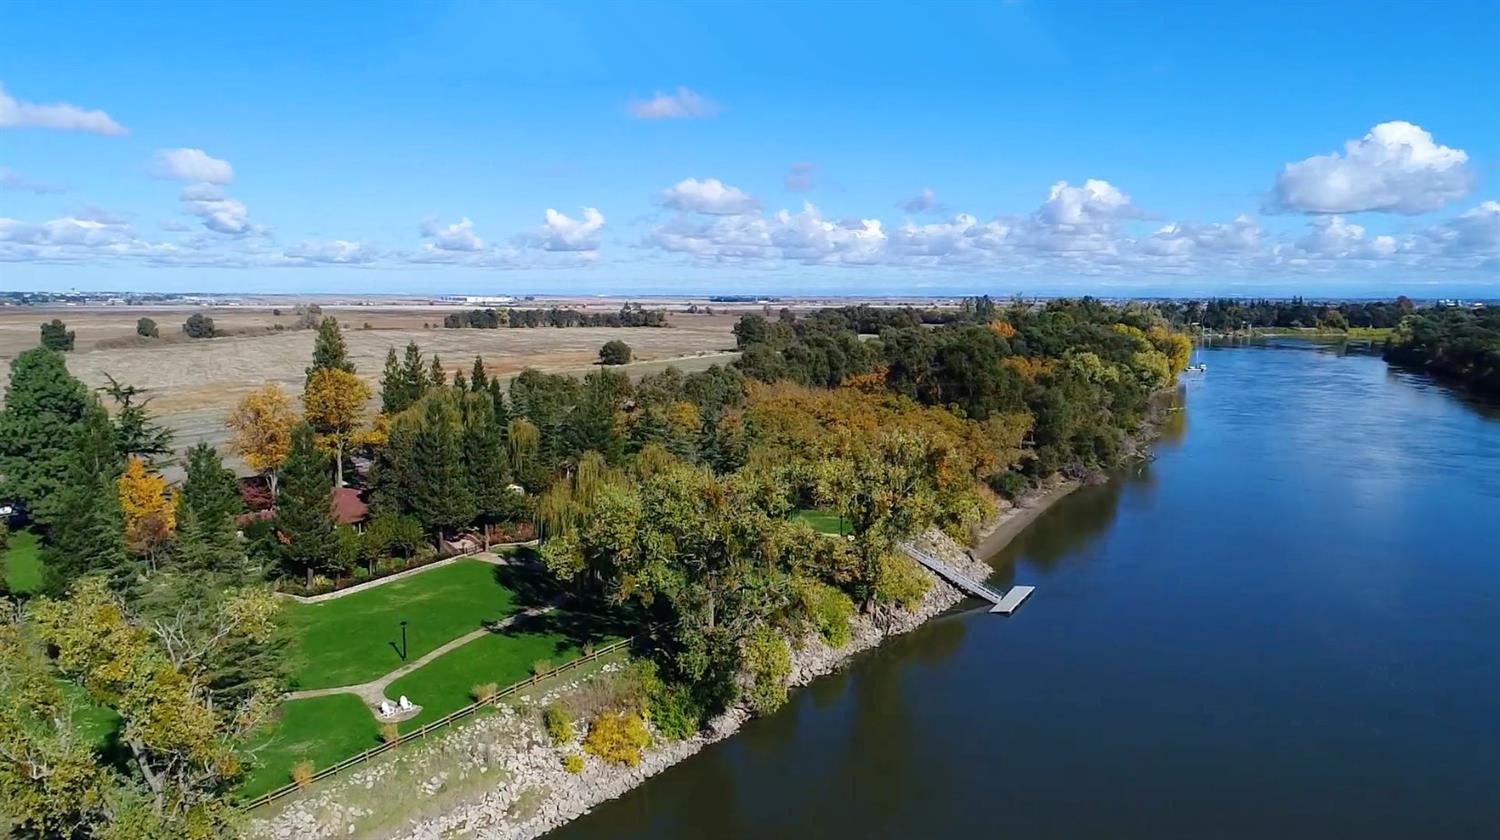 Considered the crown jewel of the Sacramento River, this prestigious waterfront estate w/ private boat dock is surrounded by spectacular vistas, nearly 2 acres of park-like grounds & superbly situated between tranquil county parcels, enhancing the expansive riverfront setting. The grand single story residence showcases a gracious Master St w/study, Library, 5 fireplaces, Guest Qtrs, pool & spa, port-cochere & 2 gated entryways.  Enjoy resort-style living, only minutes to Downtown & the Airport.